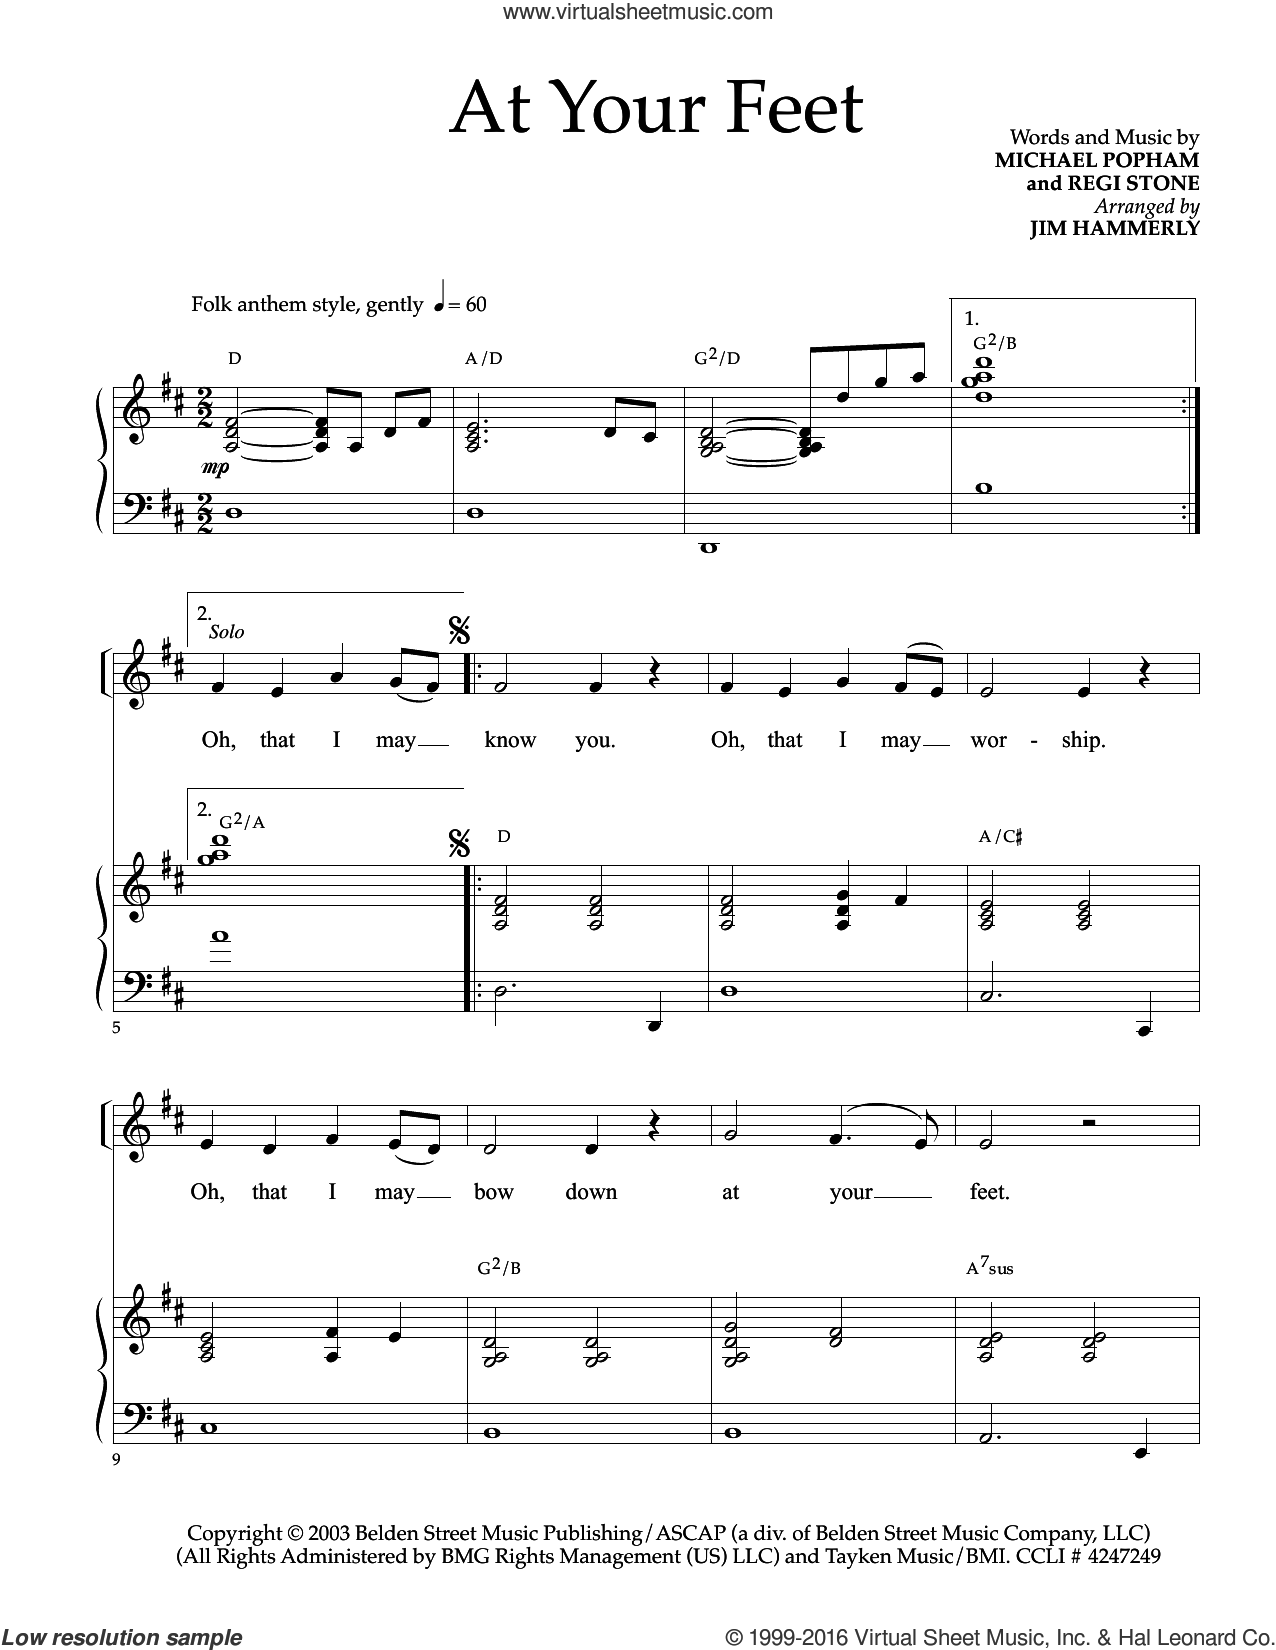 At Your Feet sheet music for voice and piano by Regi Stone and Michael Popham. Score Image Preview.